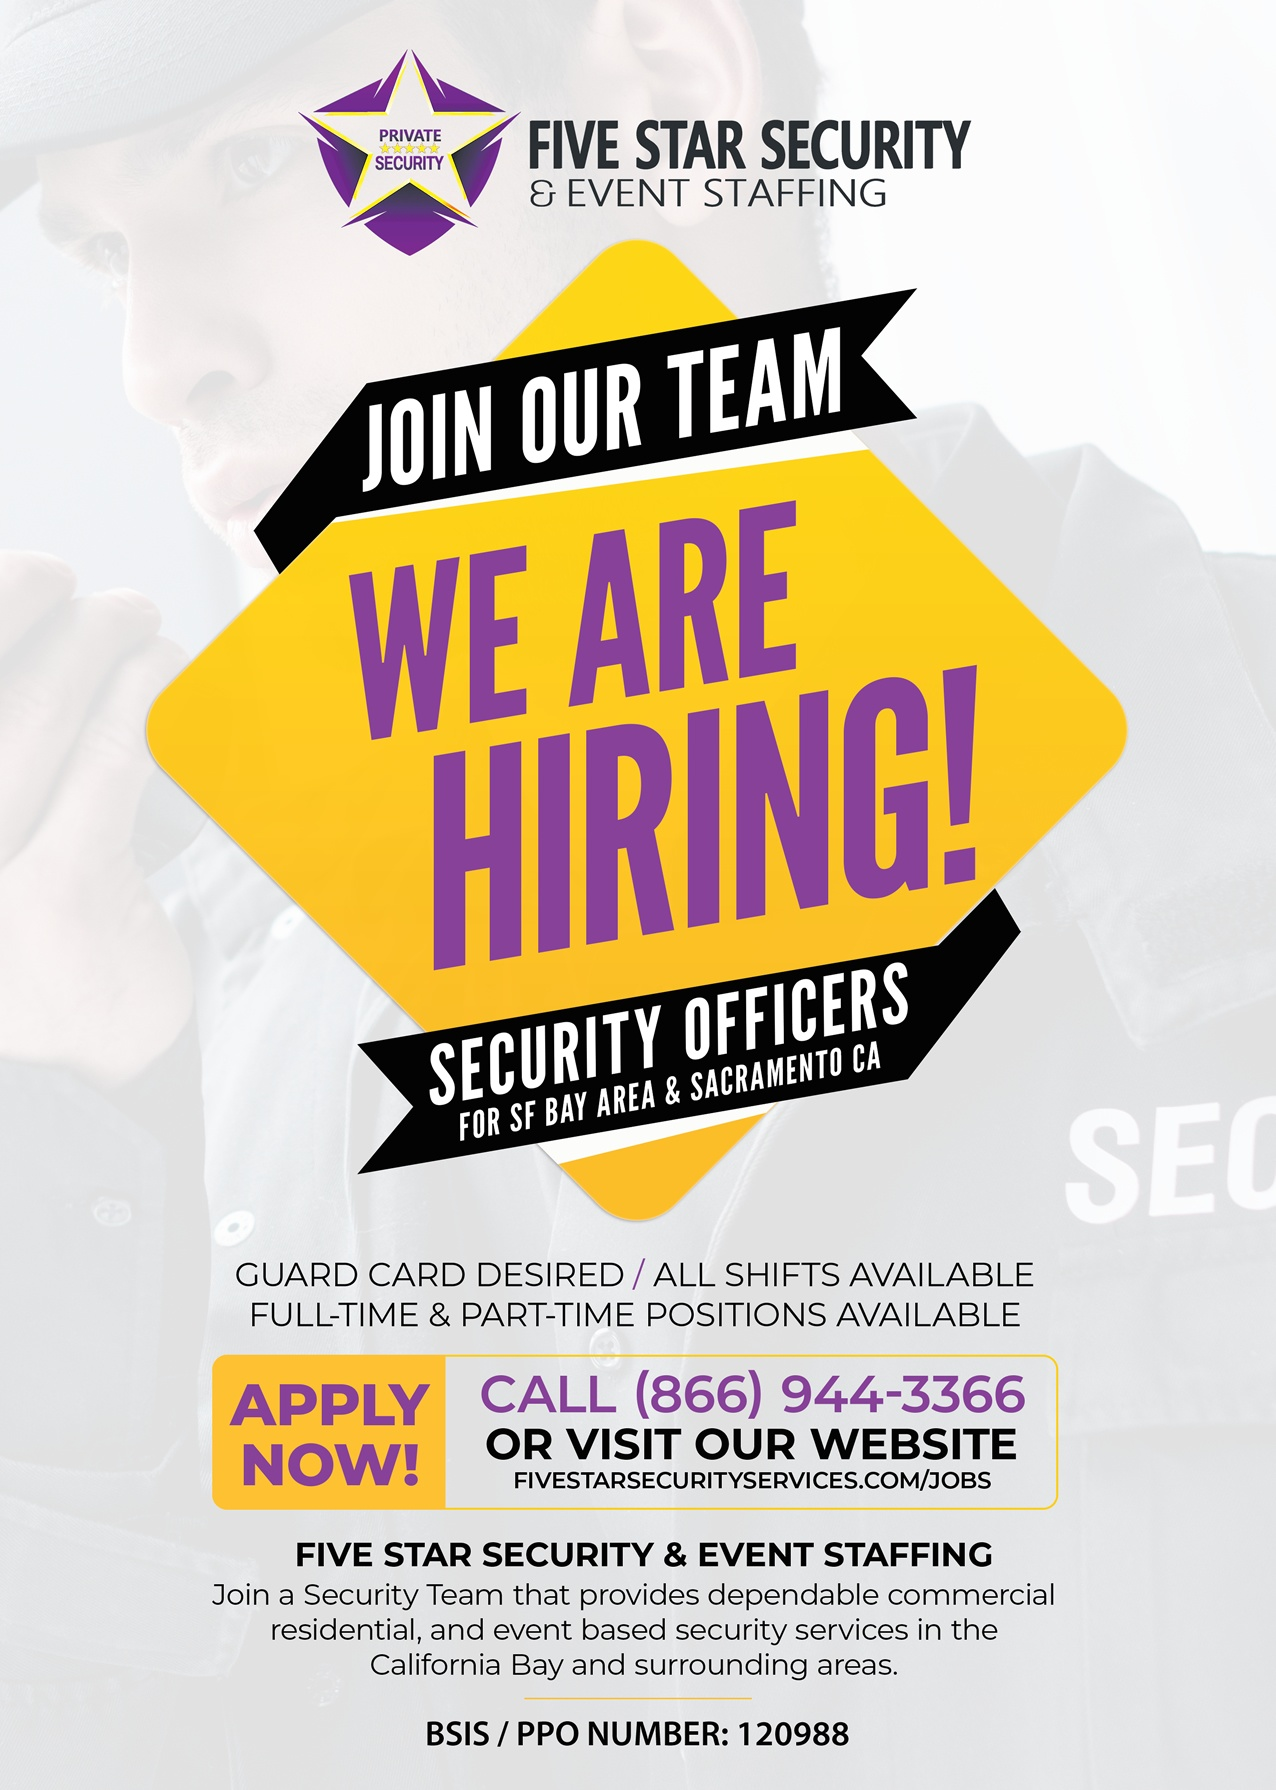 Five Star Security & Event Staffing - Oakland CA   We Are Hiring Flyer - Security Officers